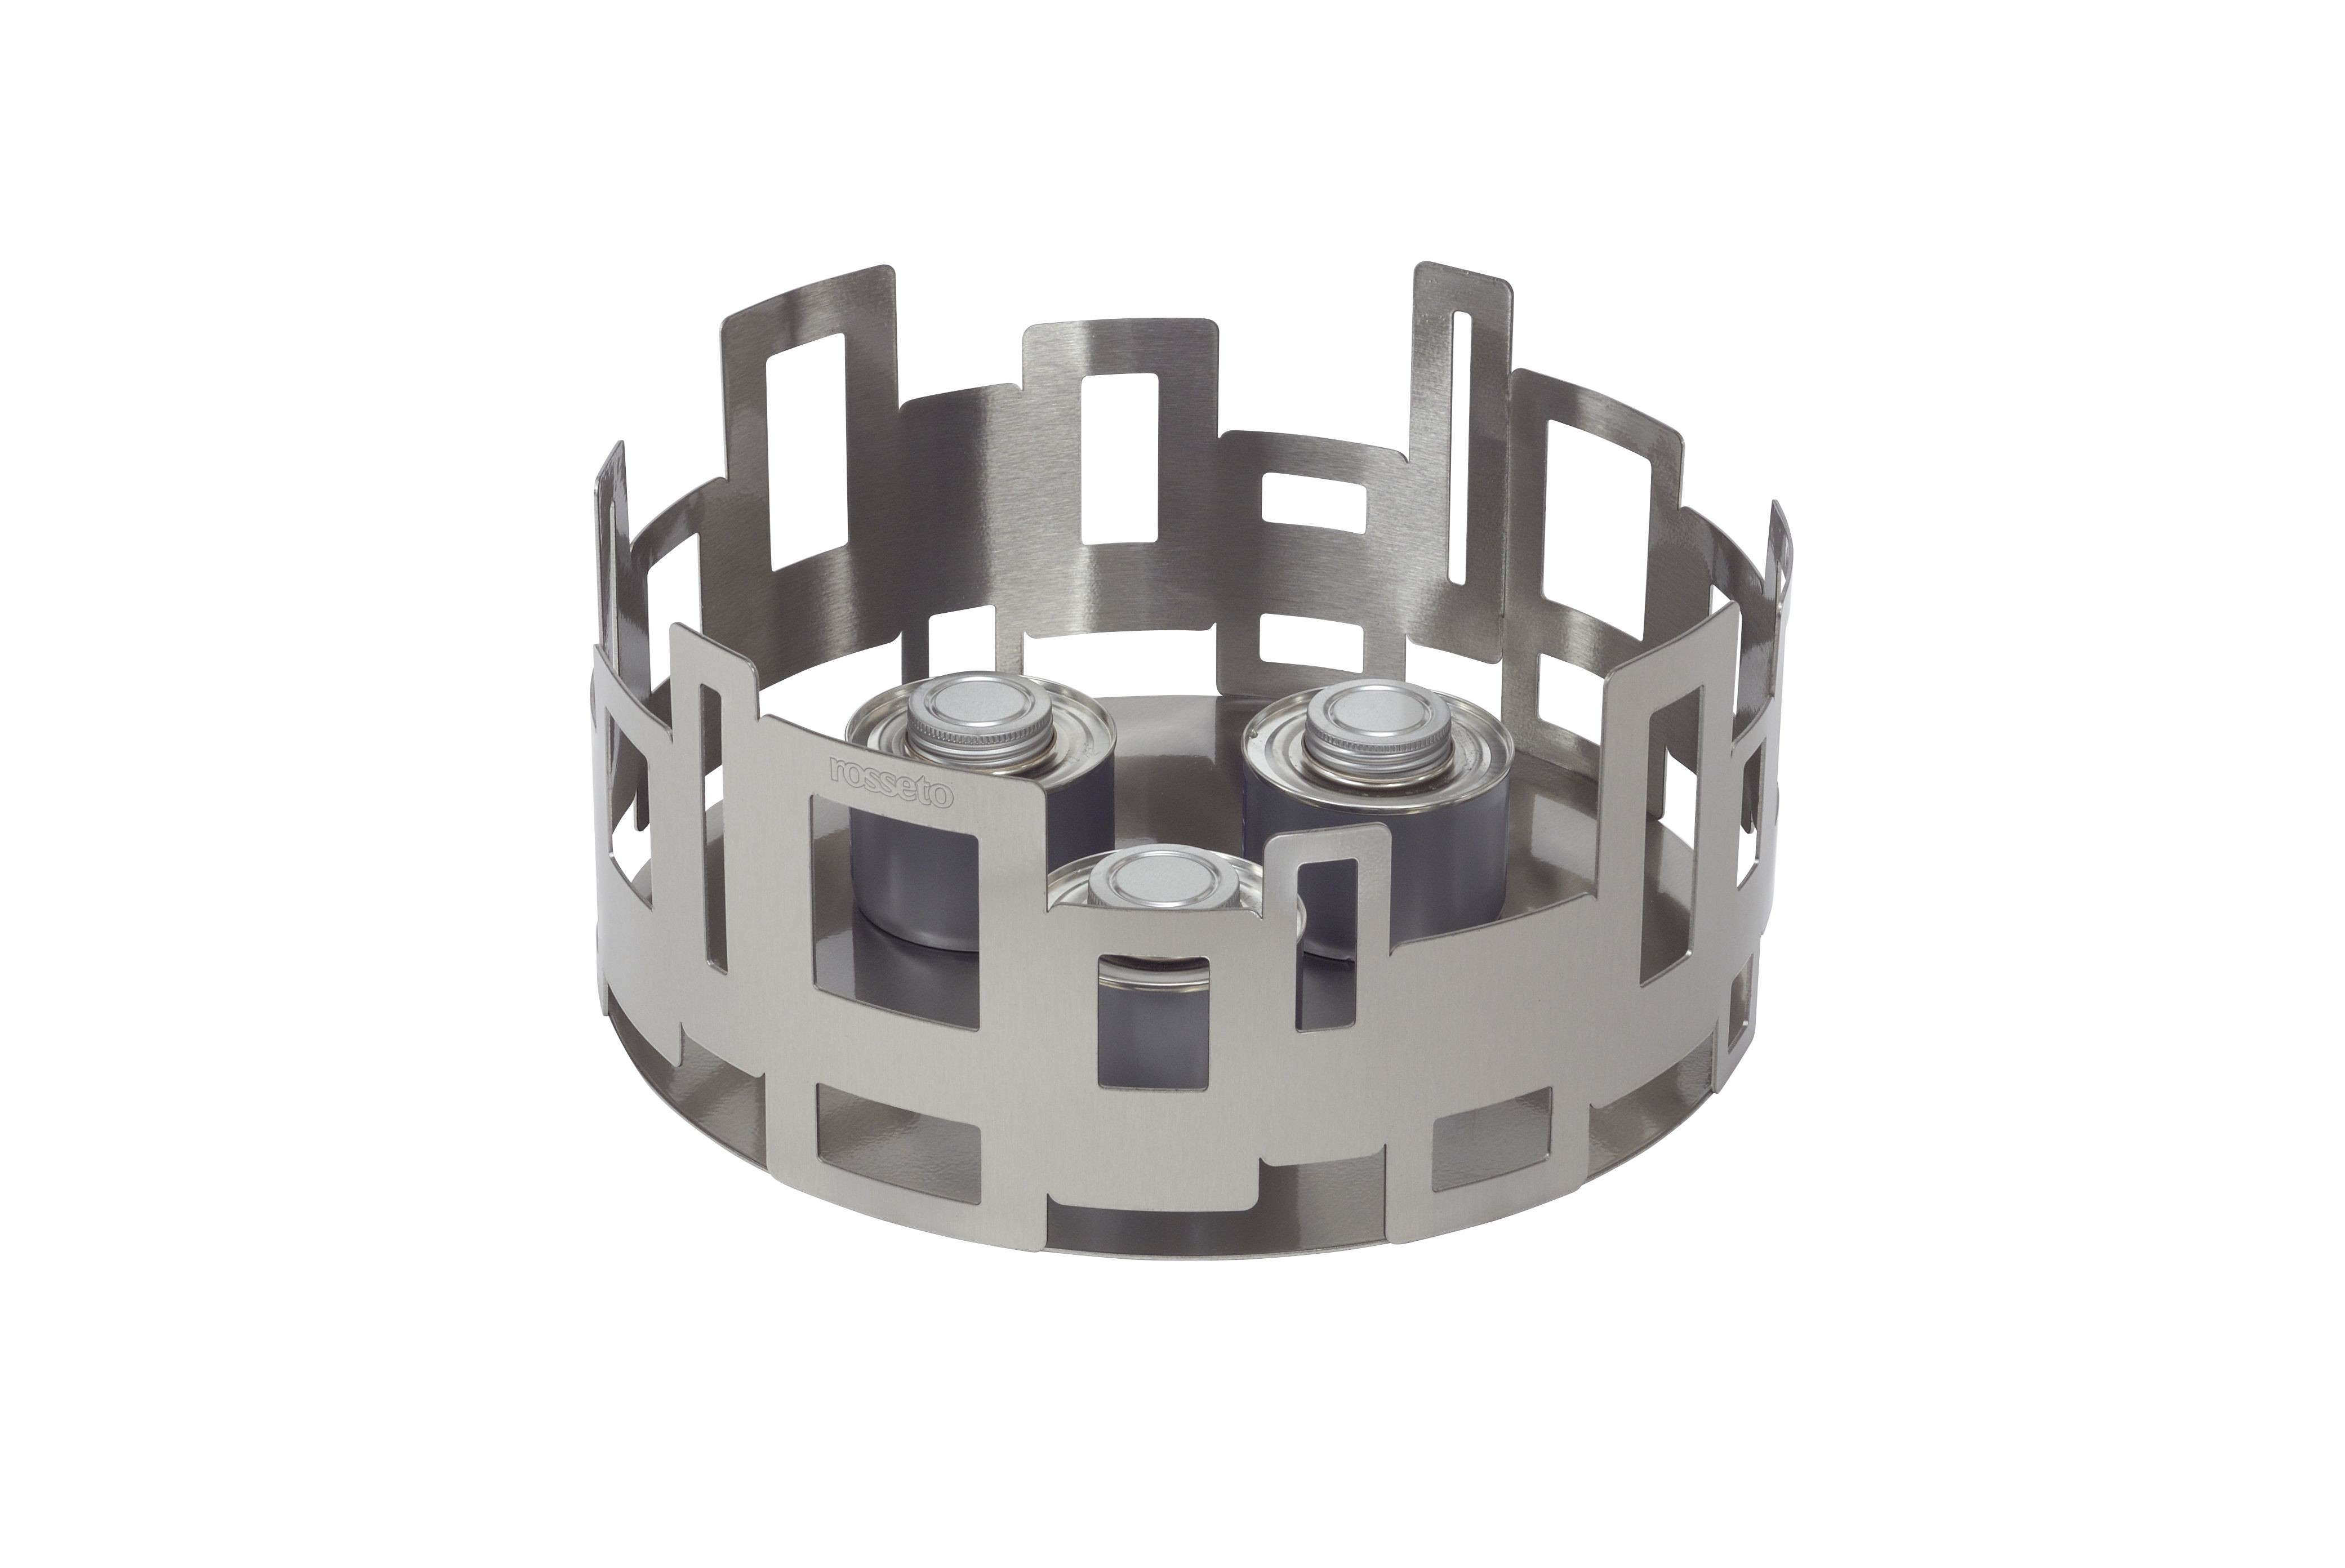 """Rosseto SM100 Round Stainless Steel Brushed Finish Buffet Warmer 14.25"""" x 6.75"""""""